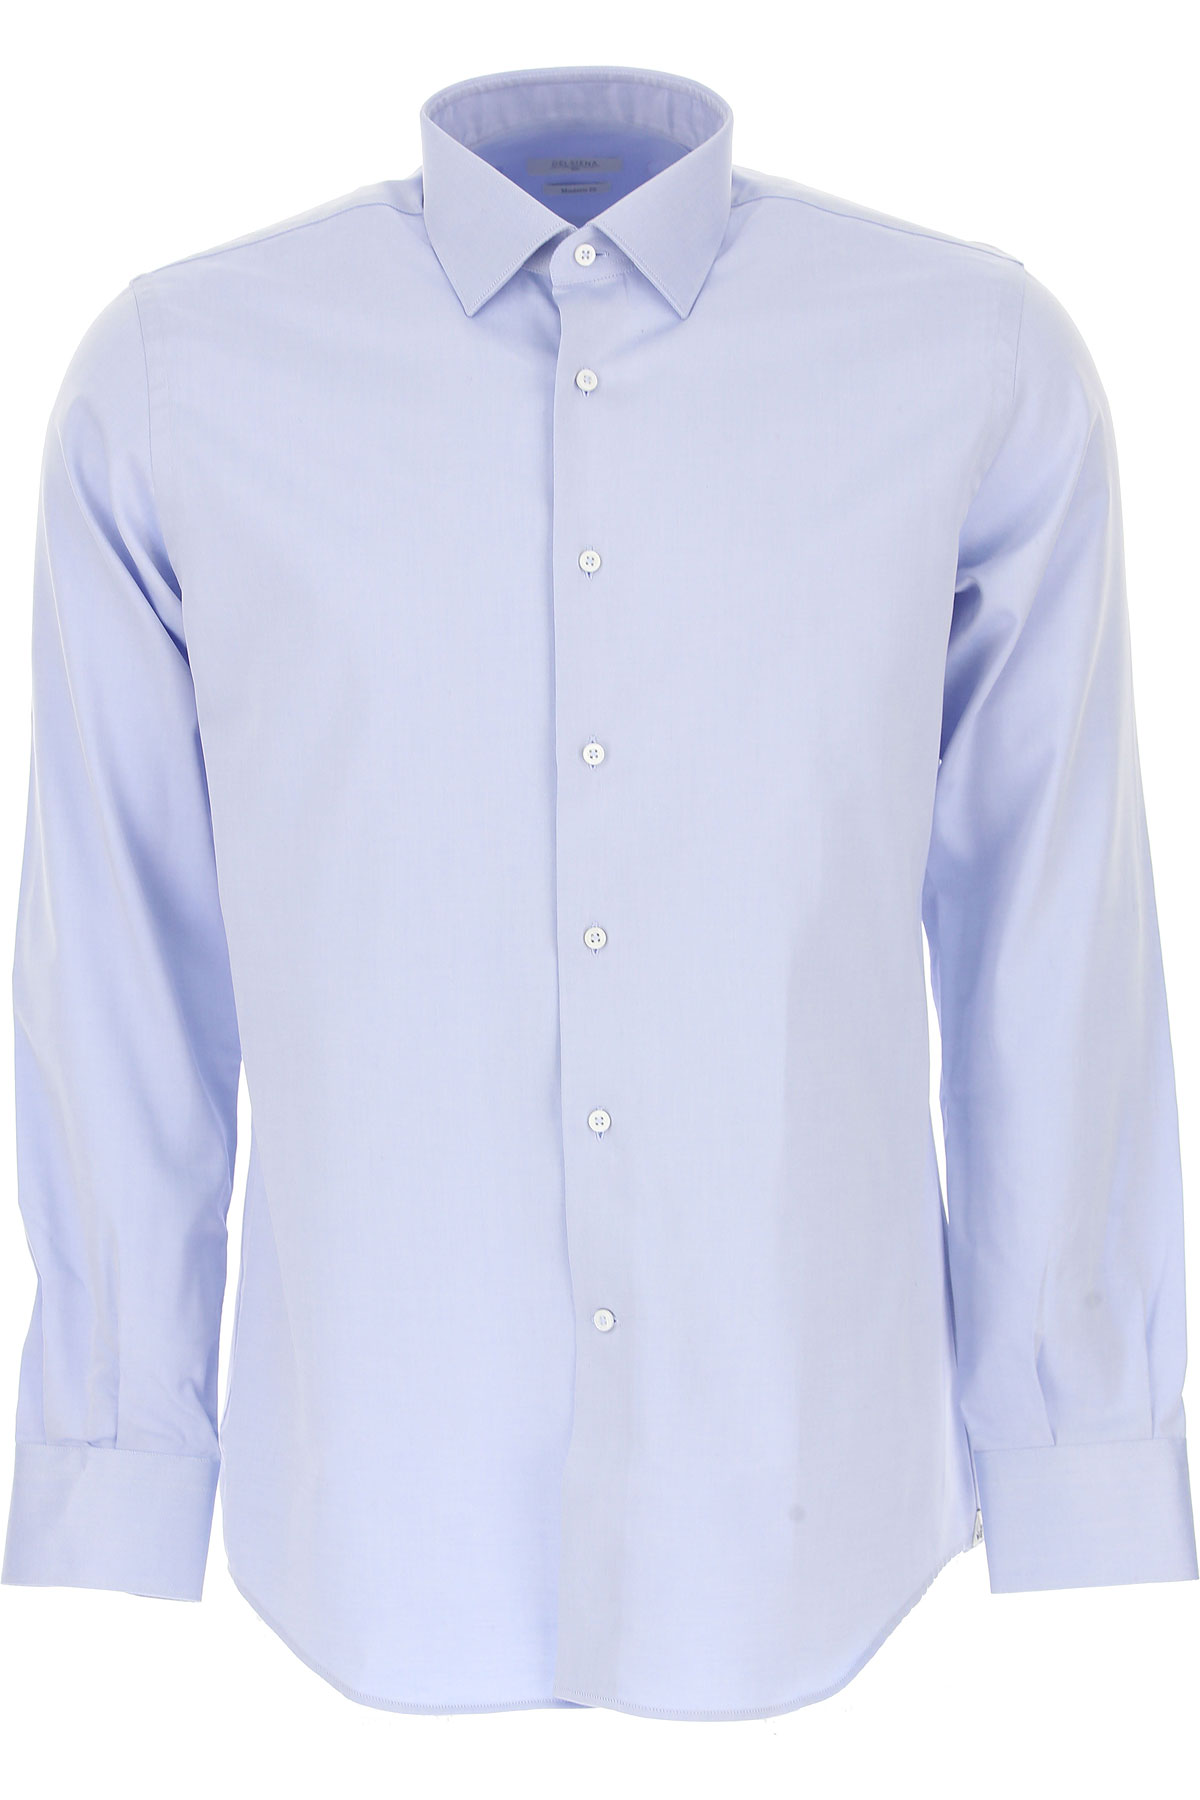 Image of Del Siena Shirt for Men, Azure, Cotton, 2017, 15.5 15.75 16 16.5 17 17.5